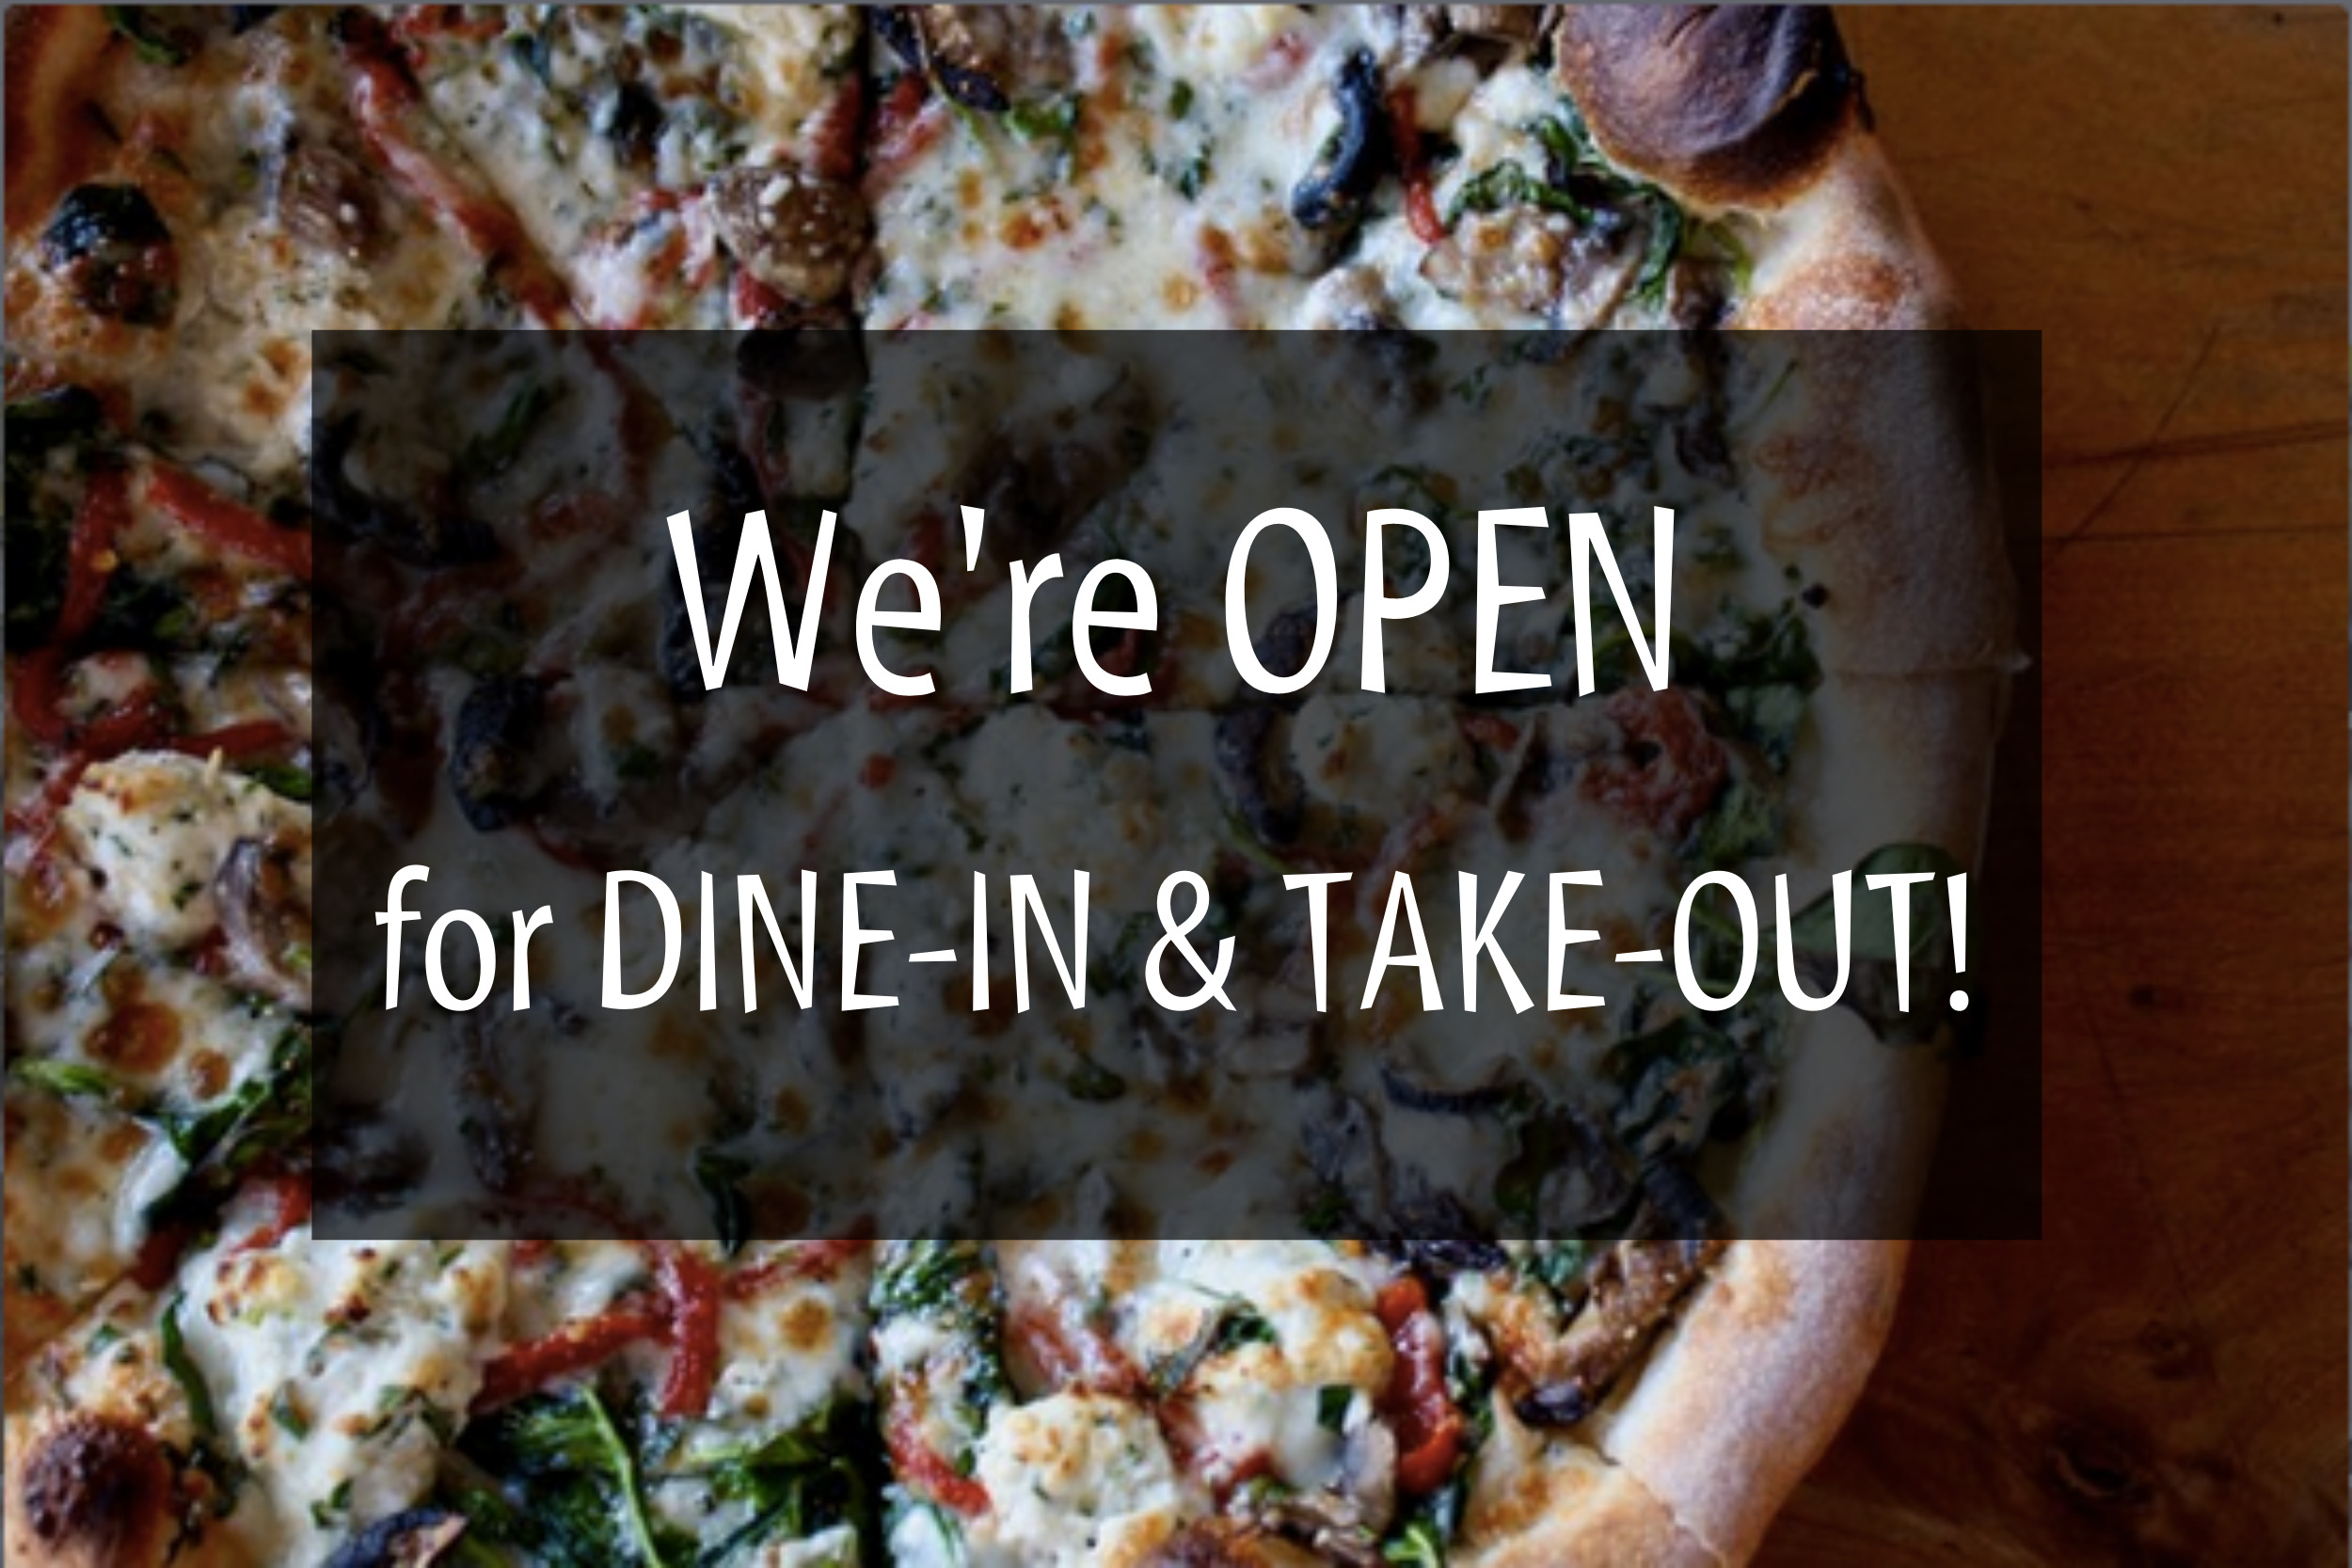 We're open for take-out!